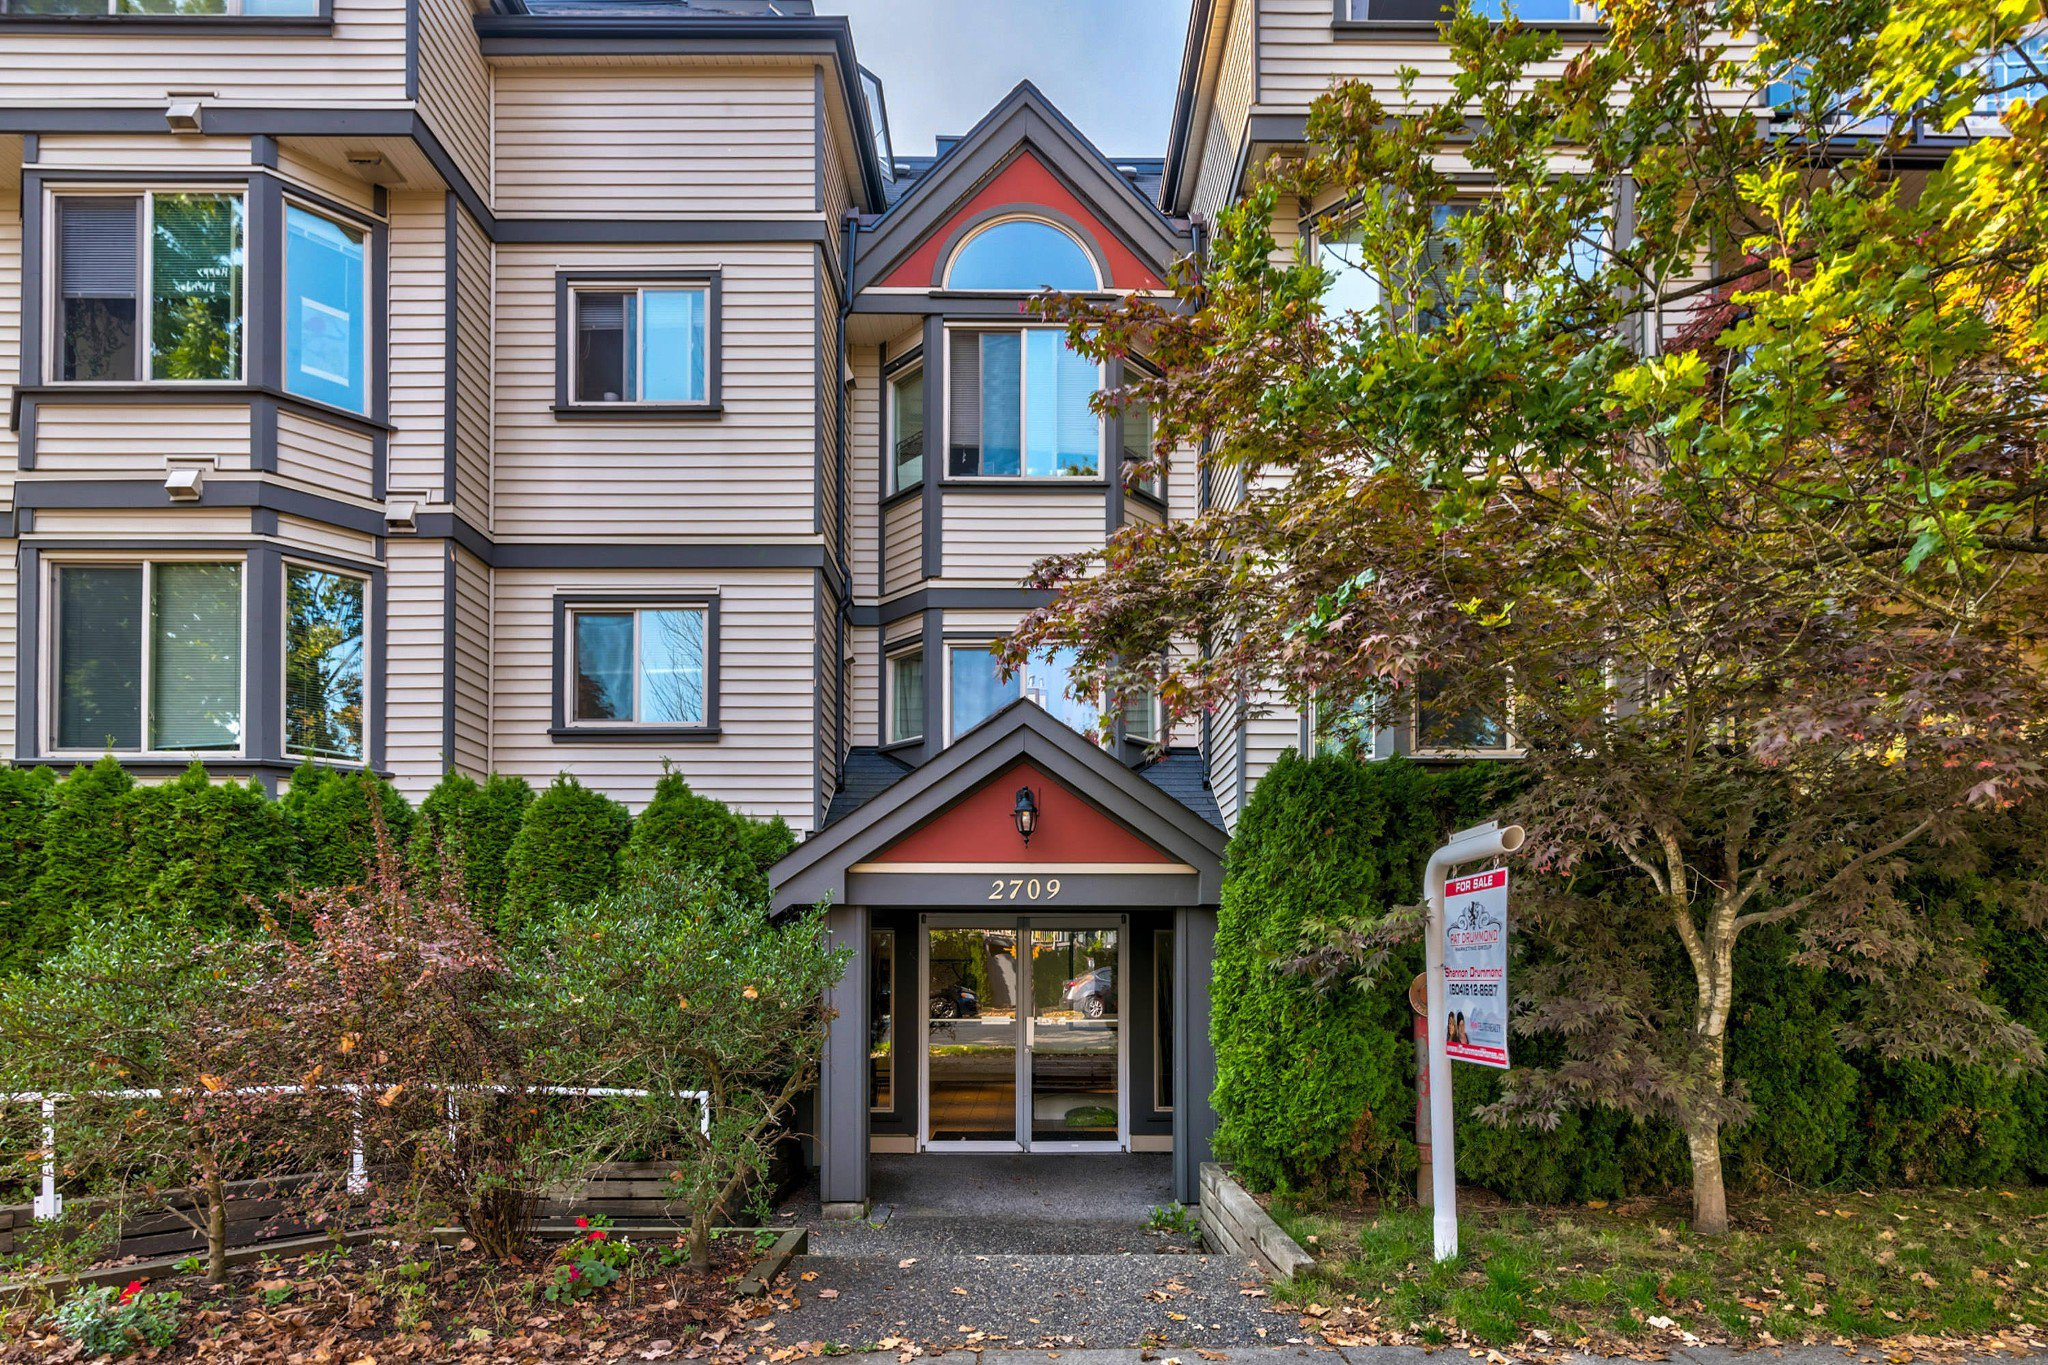 Main Photo: 103 2709 Victoria Drive in Vancouver: Grandview Woodland Condo for sale (Vancouver East)  : MLS®# R2504262